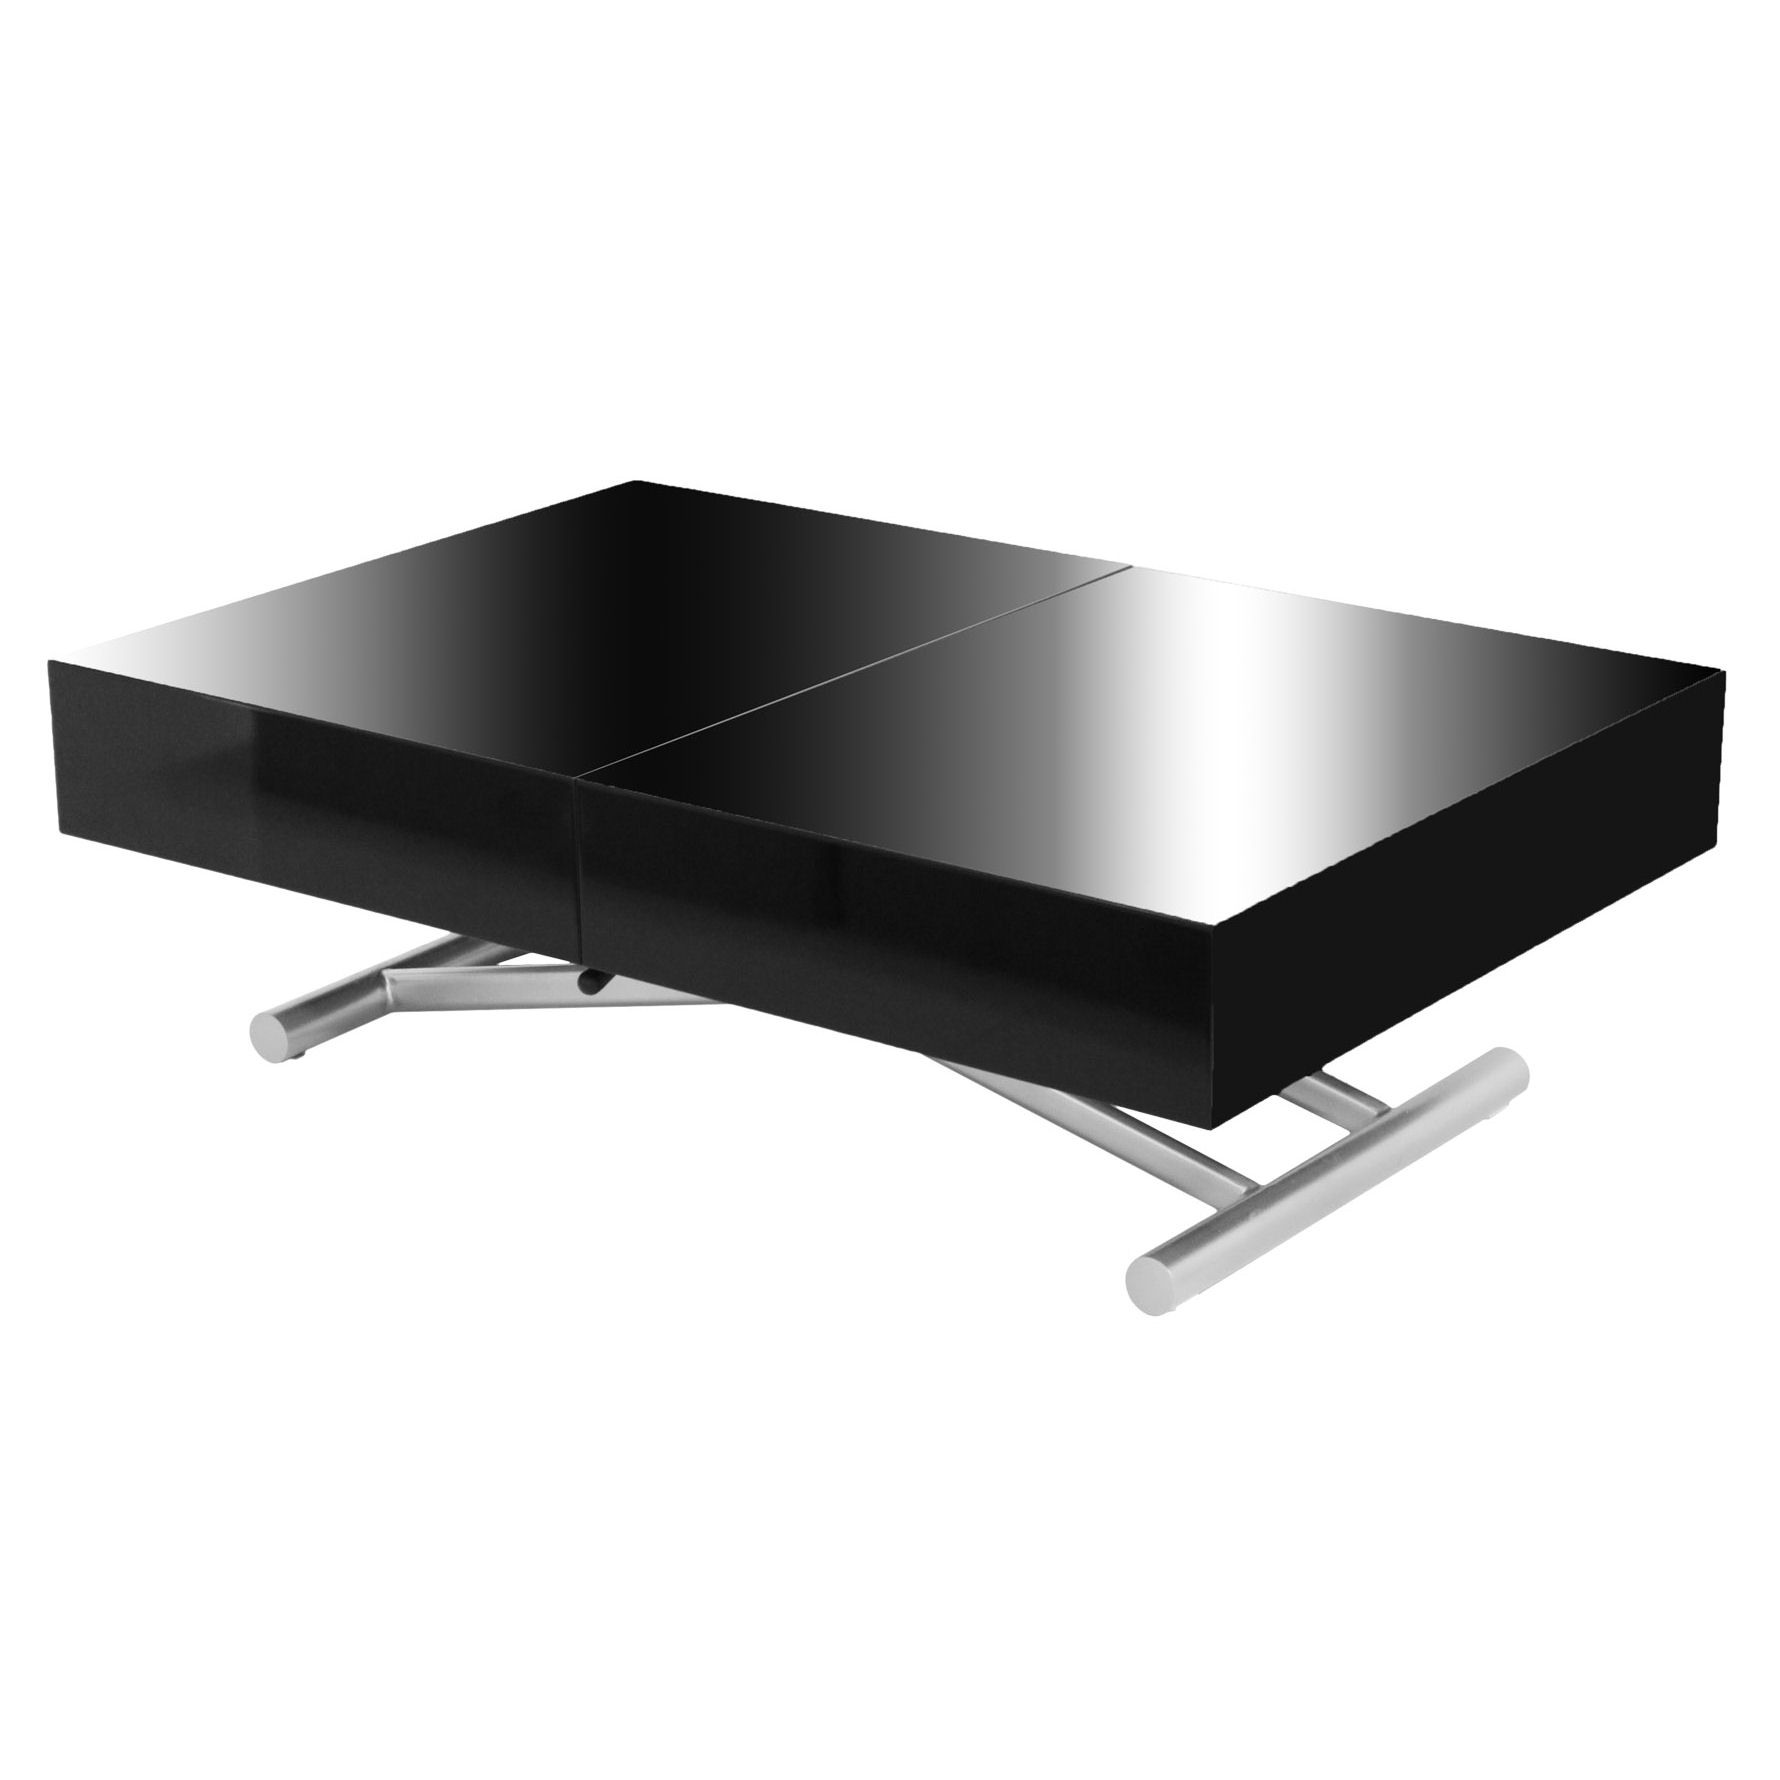 Deco in paris table basse relevable extensible noire laquee smart tab rel m - Table basse relevable but ...